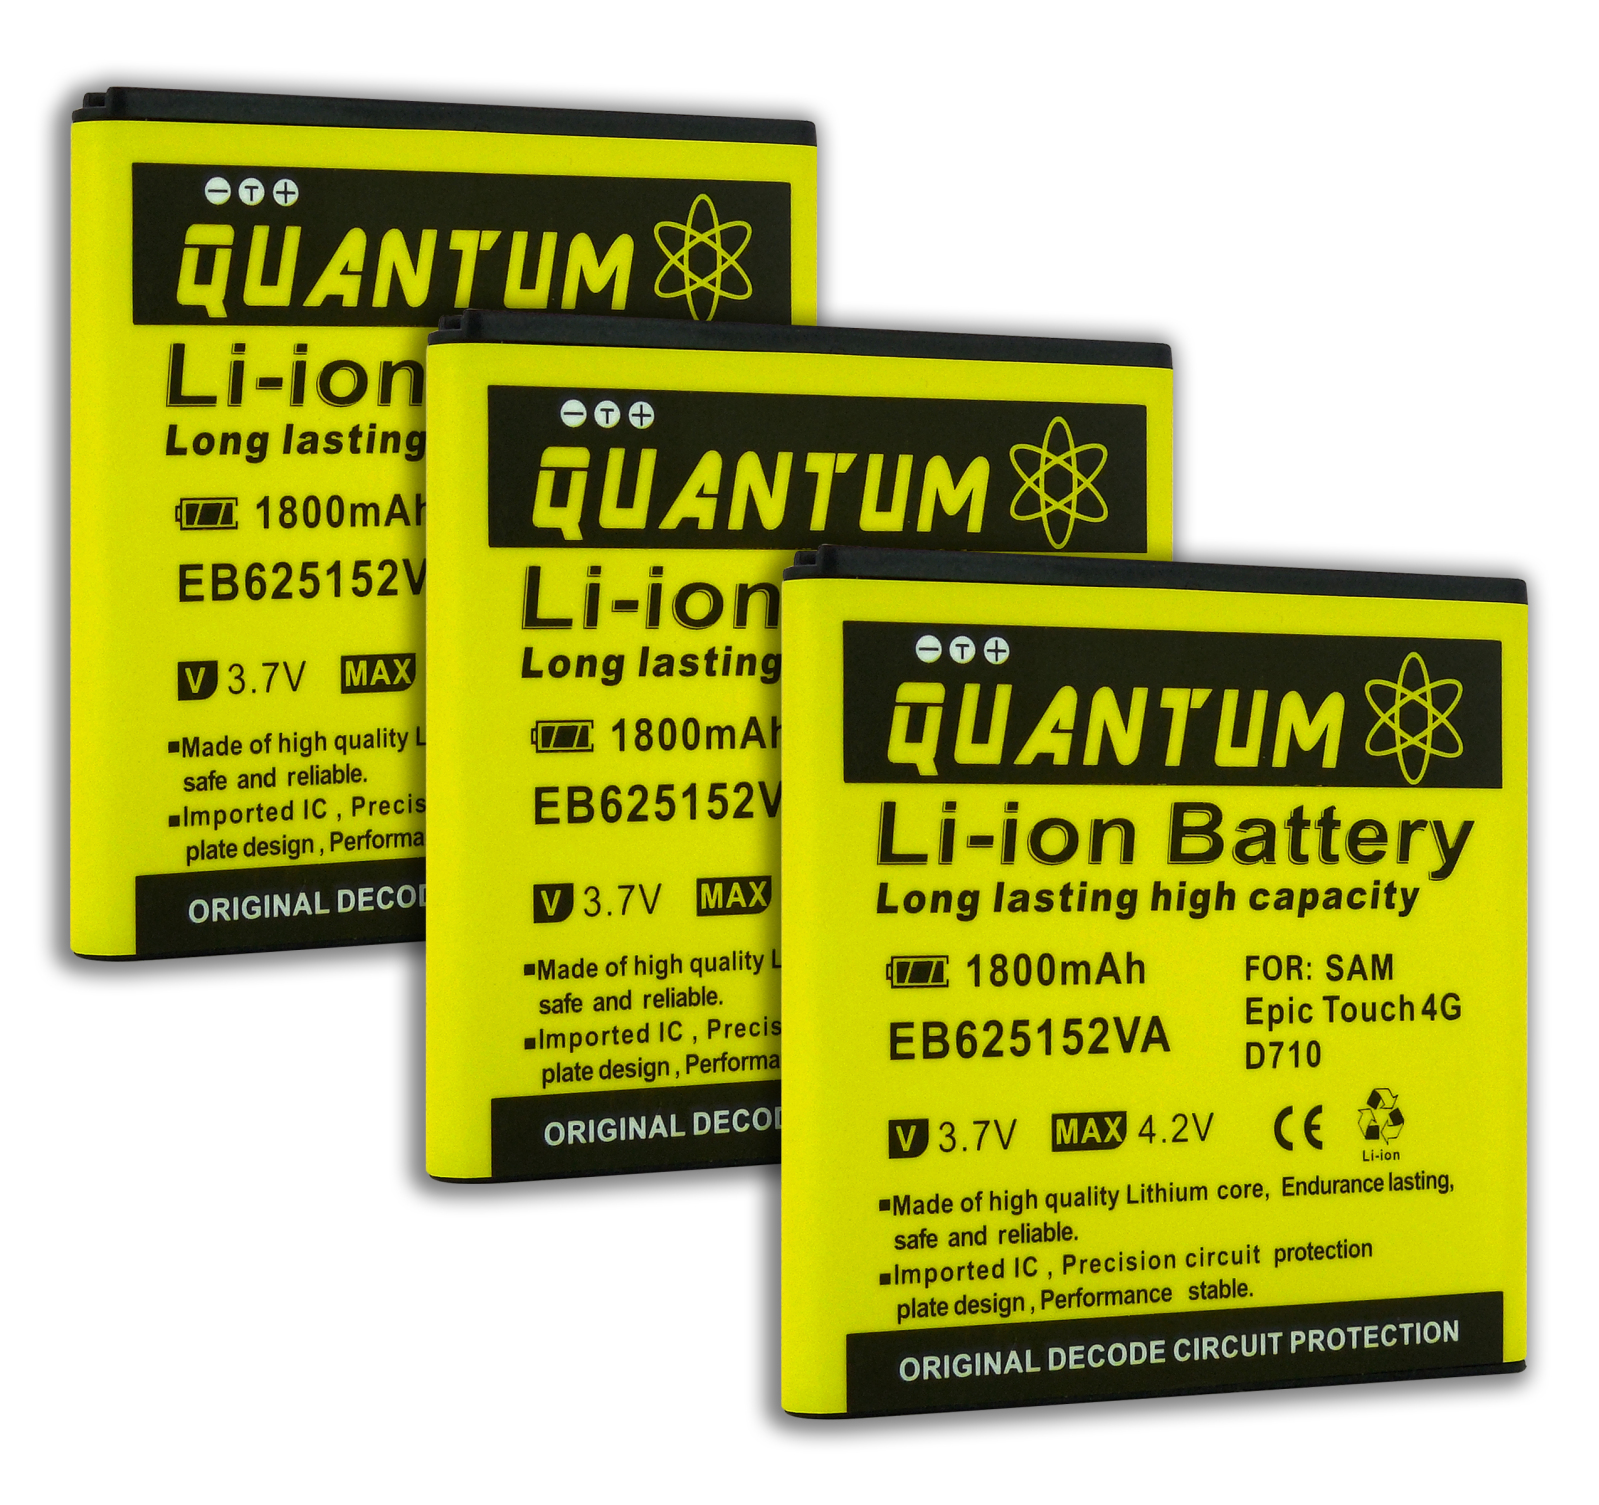 QUANTUM 3x 1,800 mAh Batteries for Galaxy S2 Epic 4G Touch SPH-D710, 12 MONTH WARRANTY